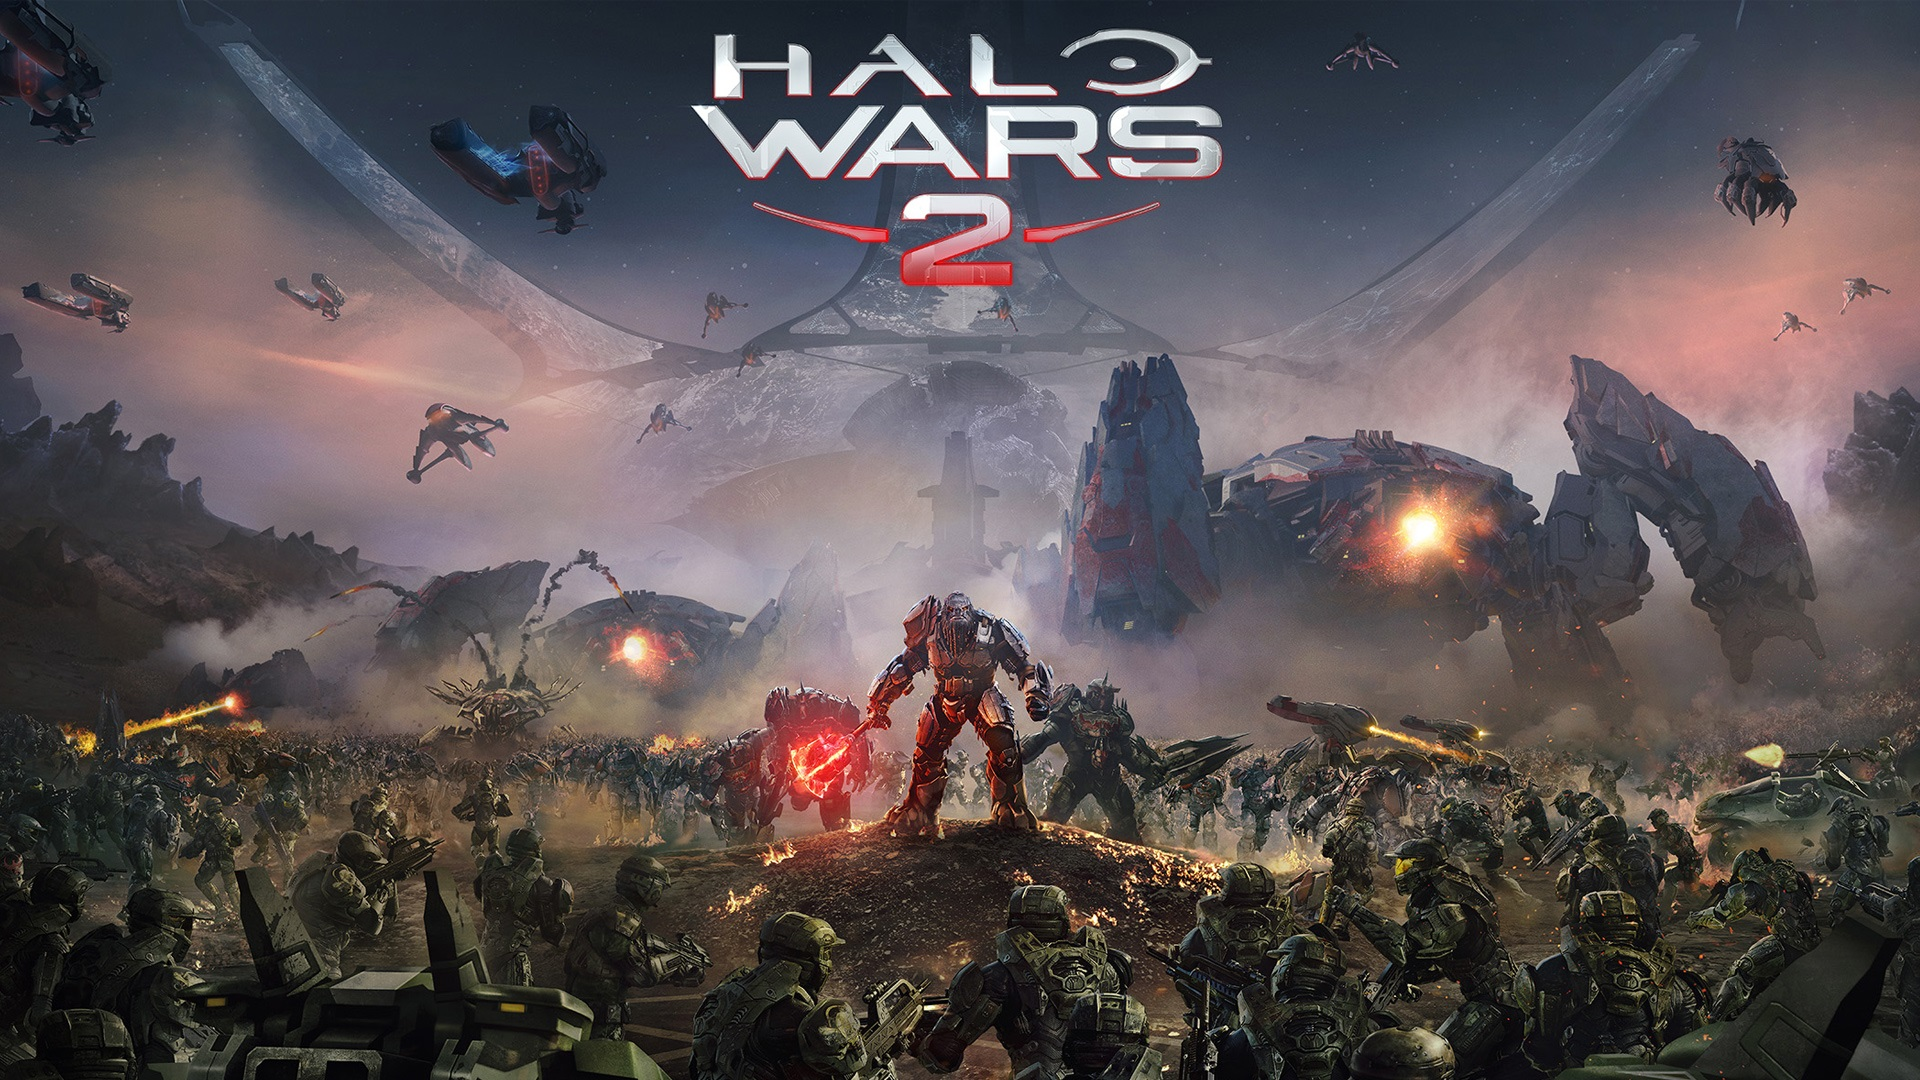 Wallpaper Halo Wars 2 Xbox Games 1920x1080 Full Hd 2k Picture Image